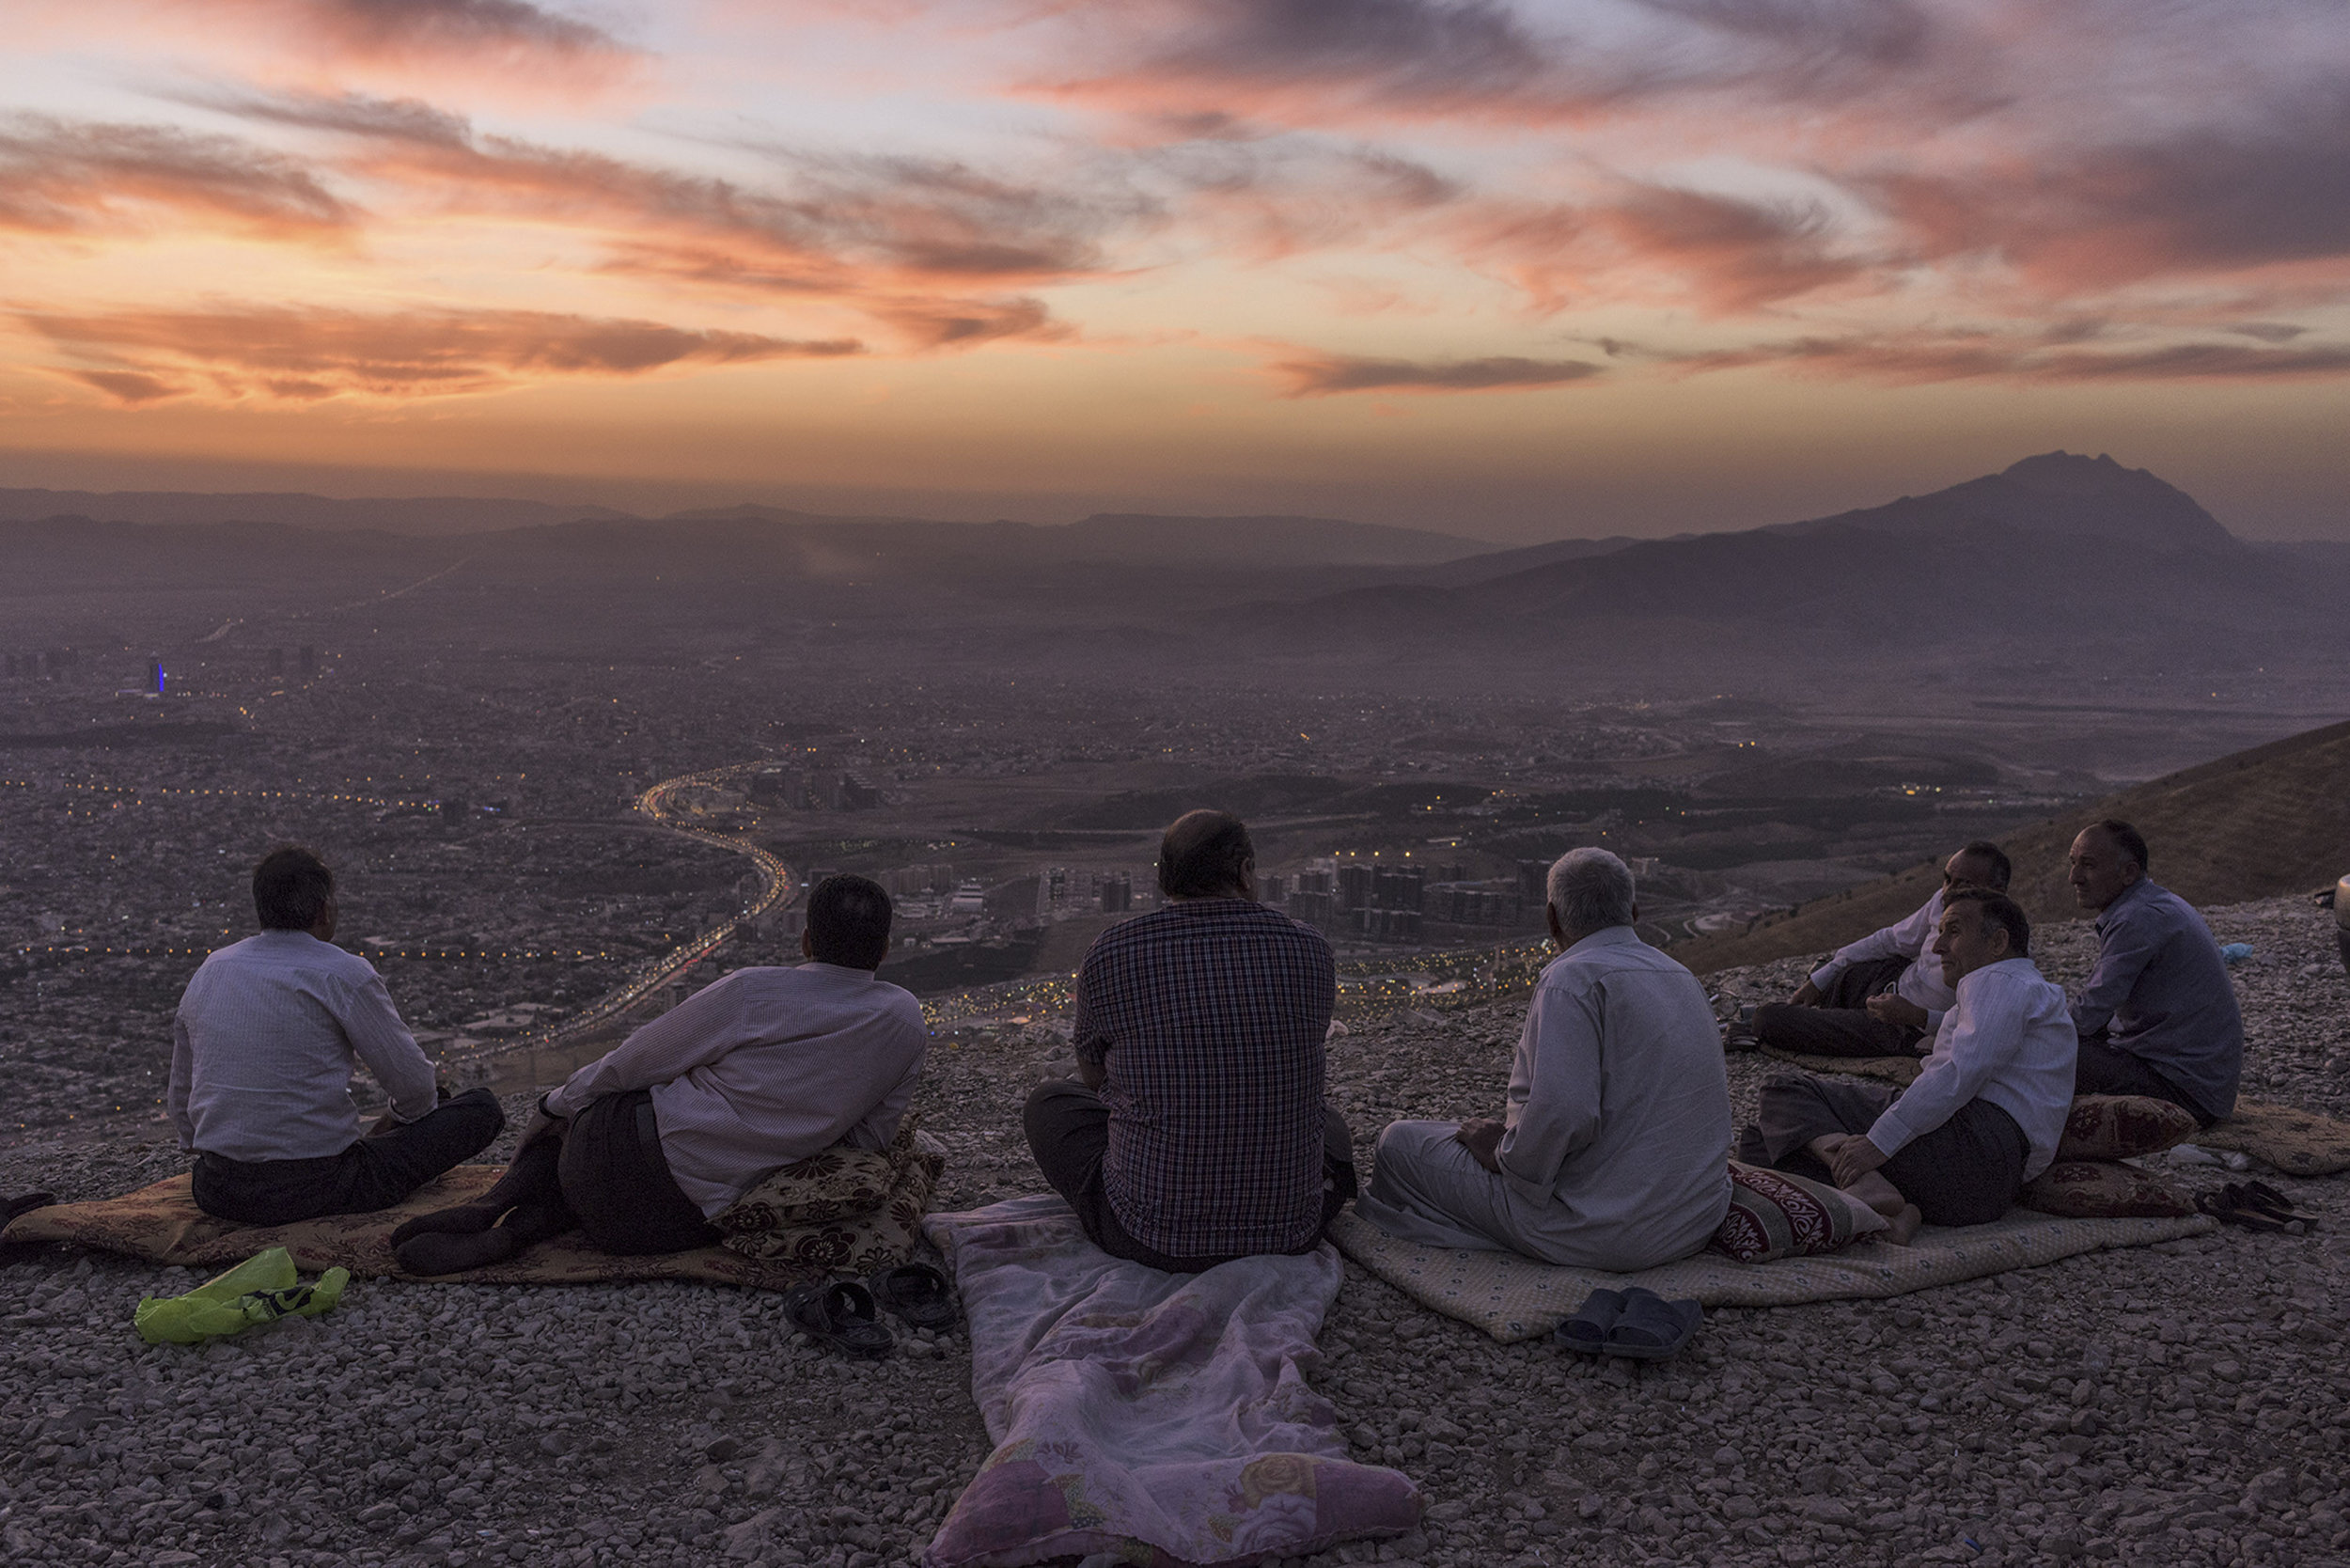 Iraqi Kurdistan, Sulaymaniyah, September 2015, The view of the city from the northeastern Goyje Mountain.